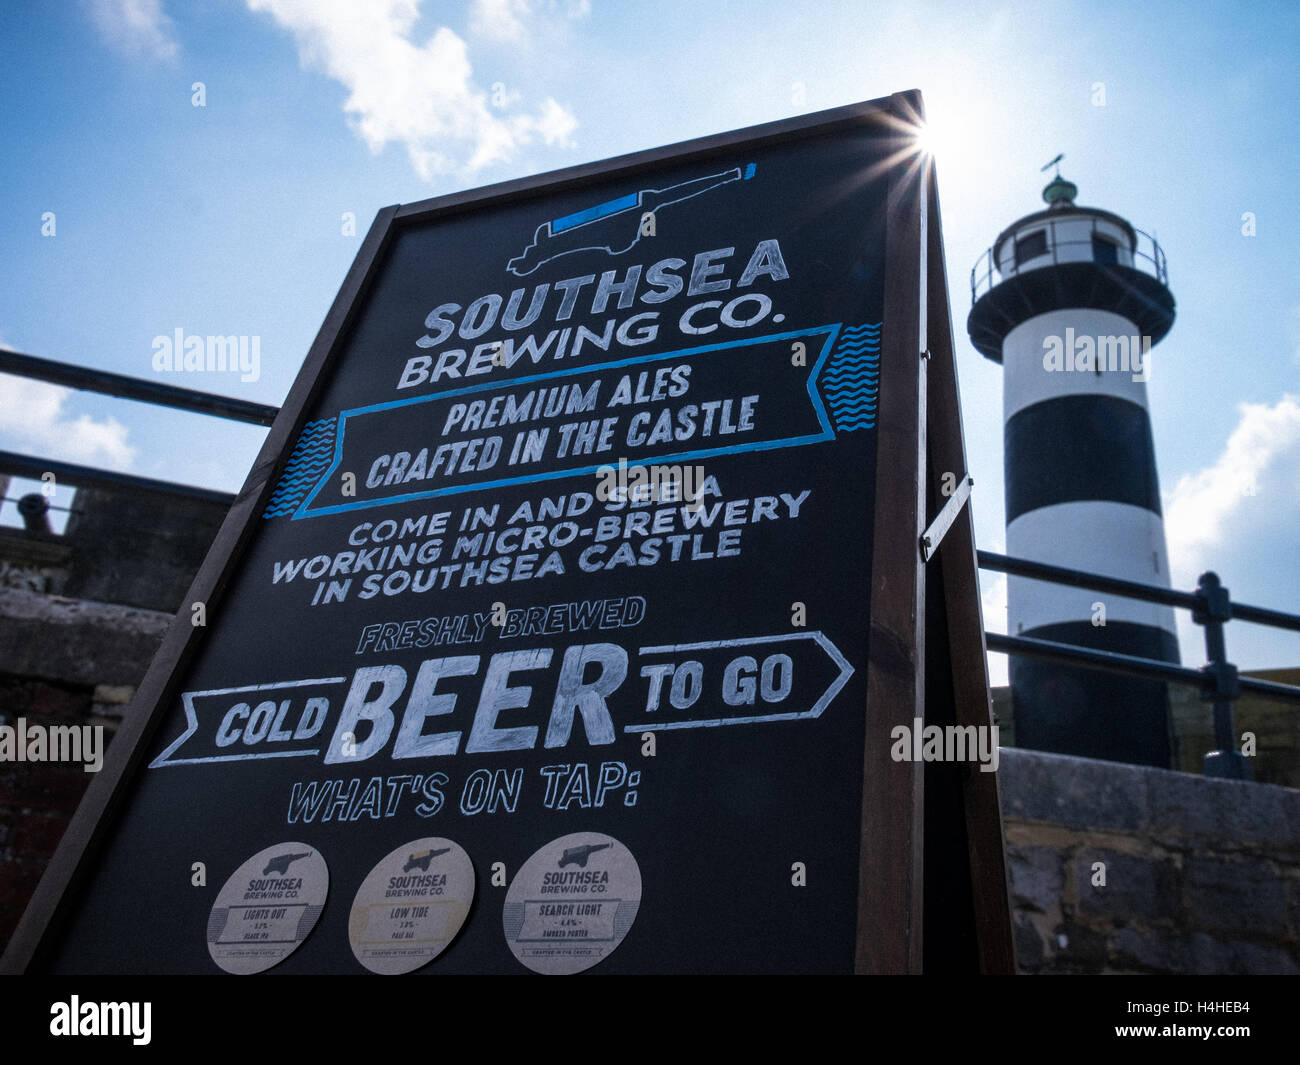 Southsea Brewing Company is an artisan brewery located in an old ammunition storage room within the walls of a coastal - Stock Image